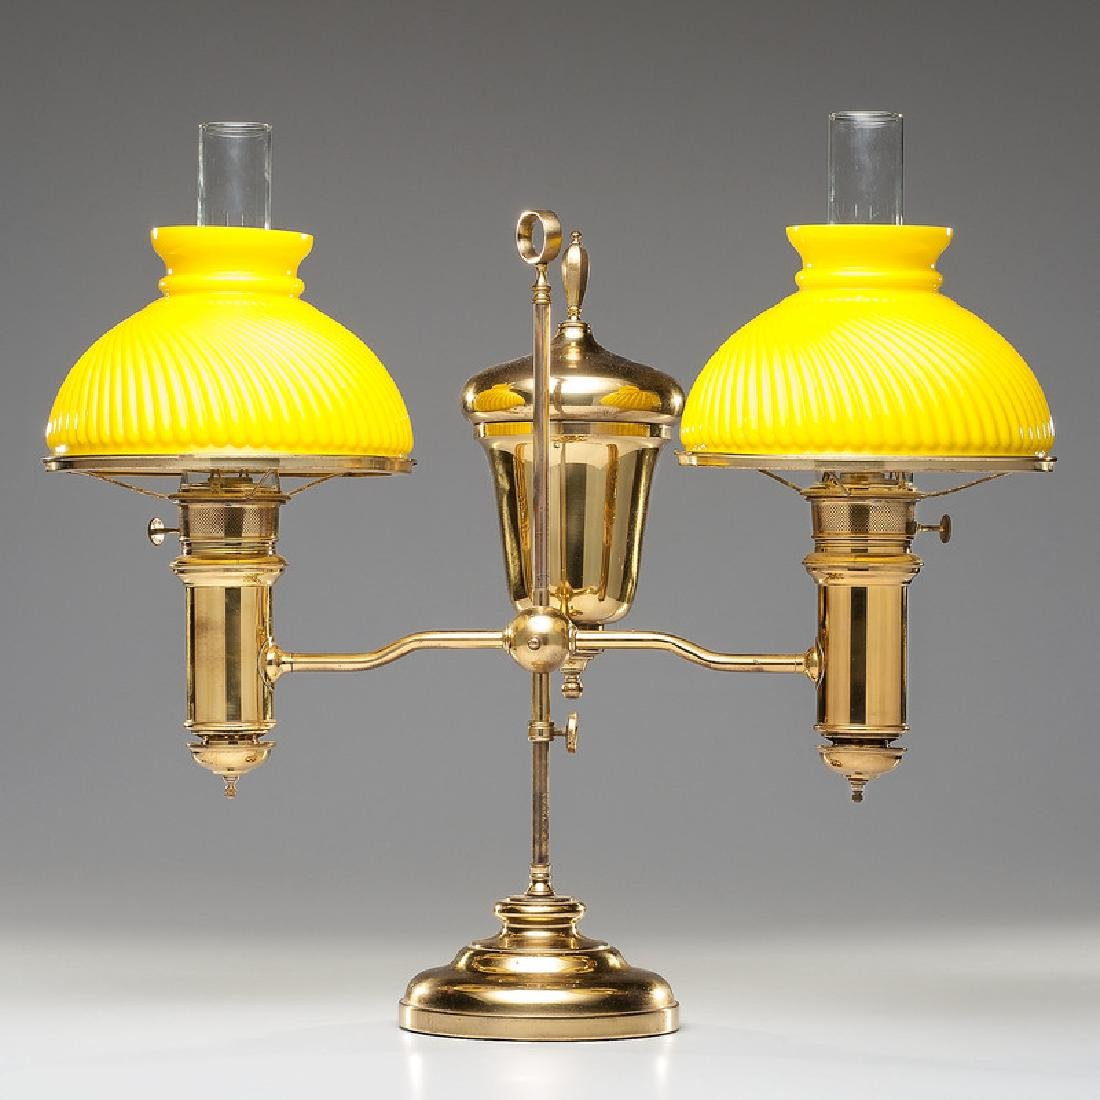 Edward Miller Double Student Lamp